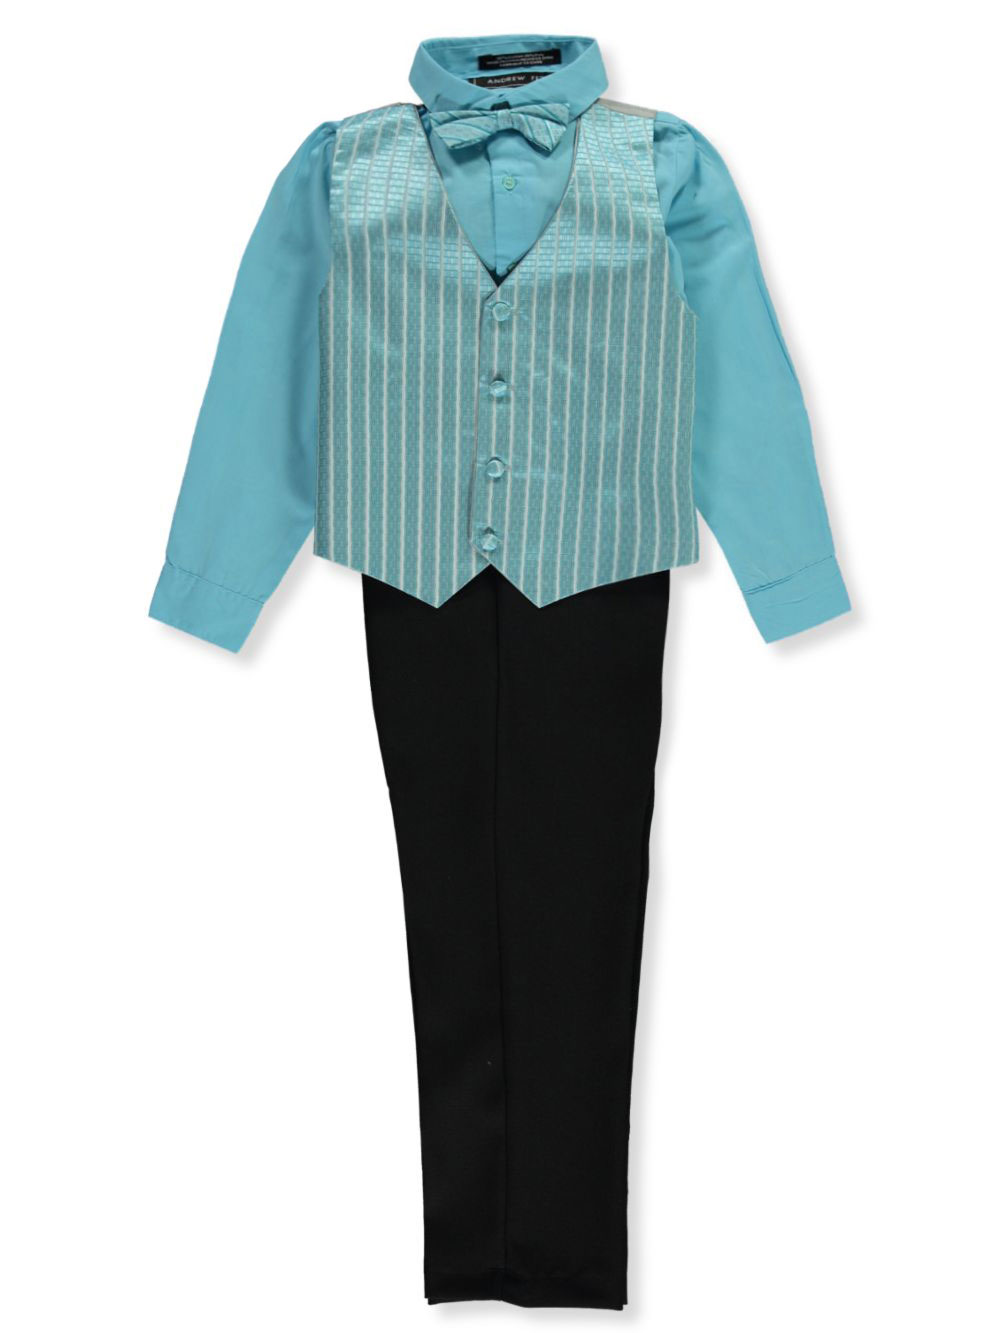 Turquoise Formal Pant Sets